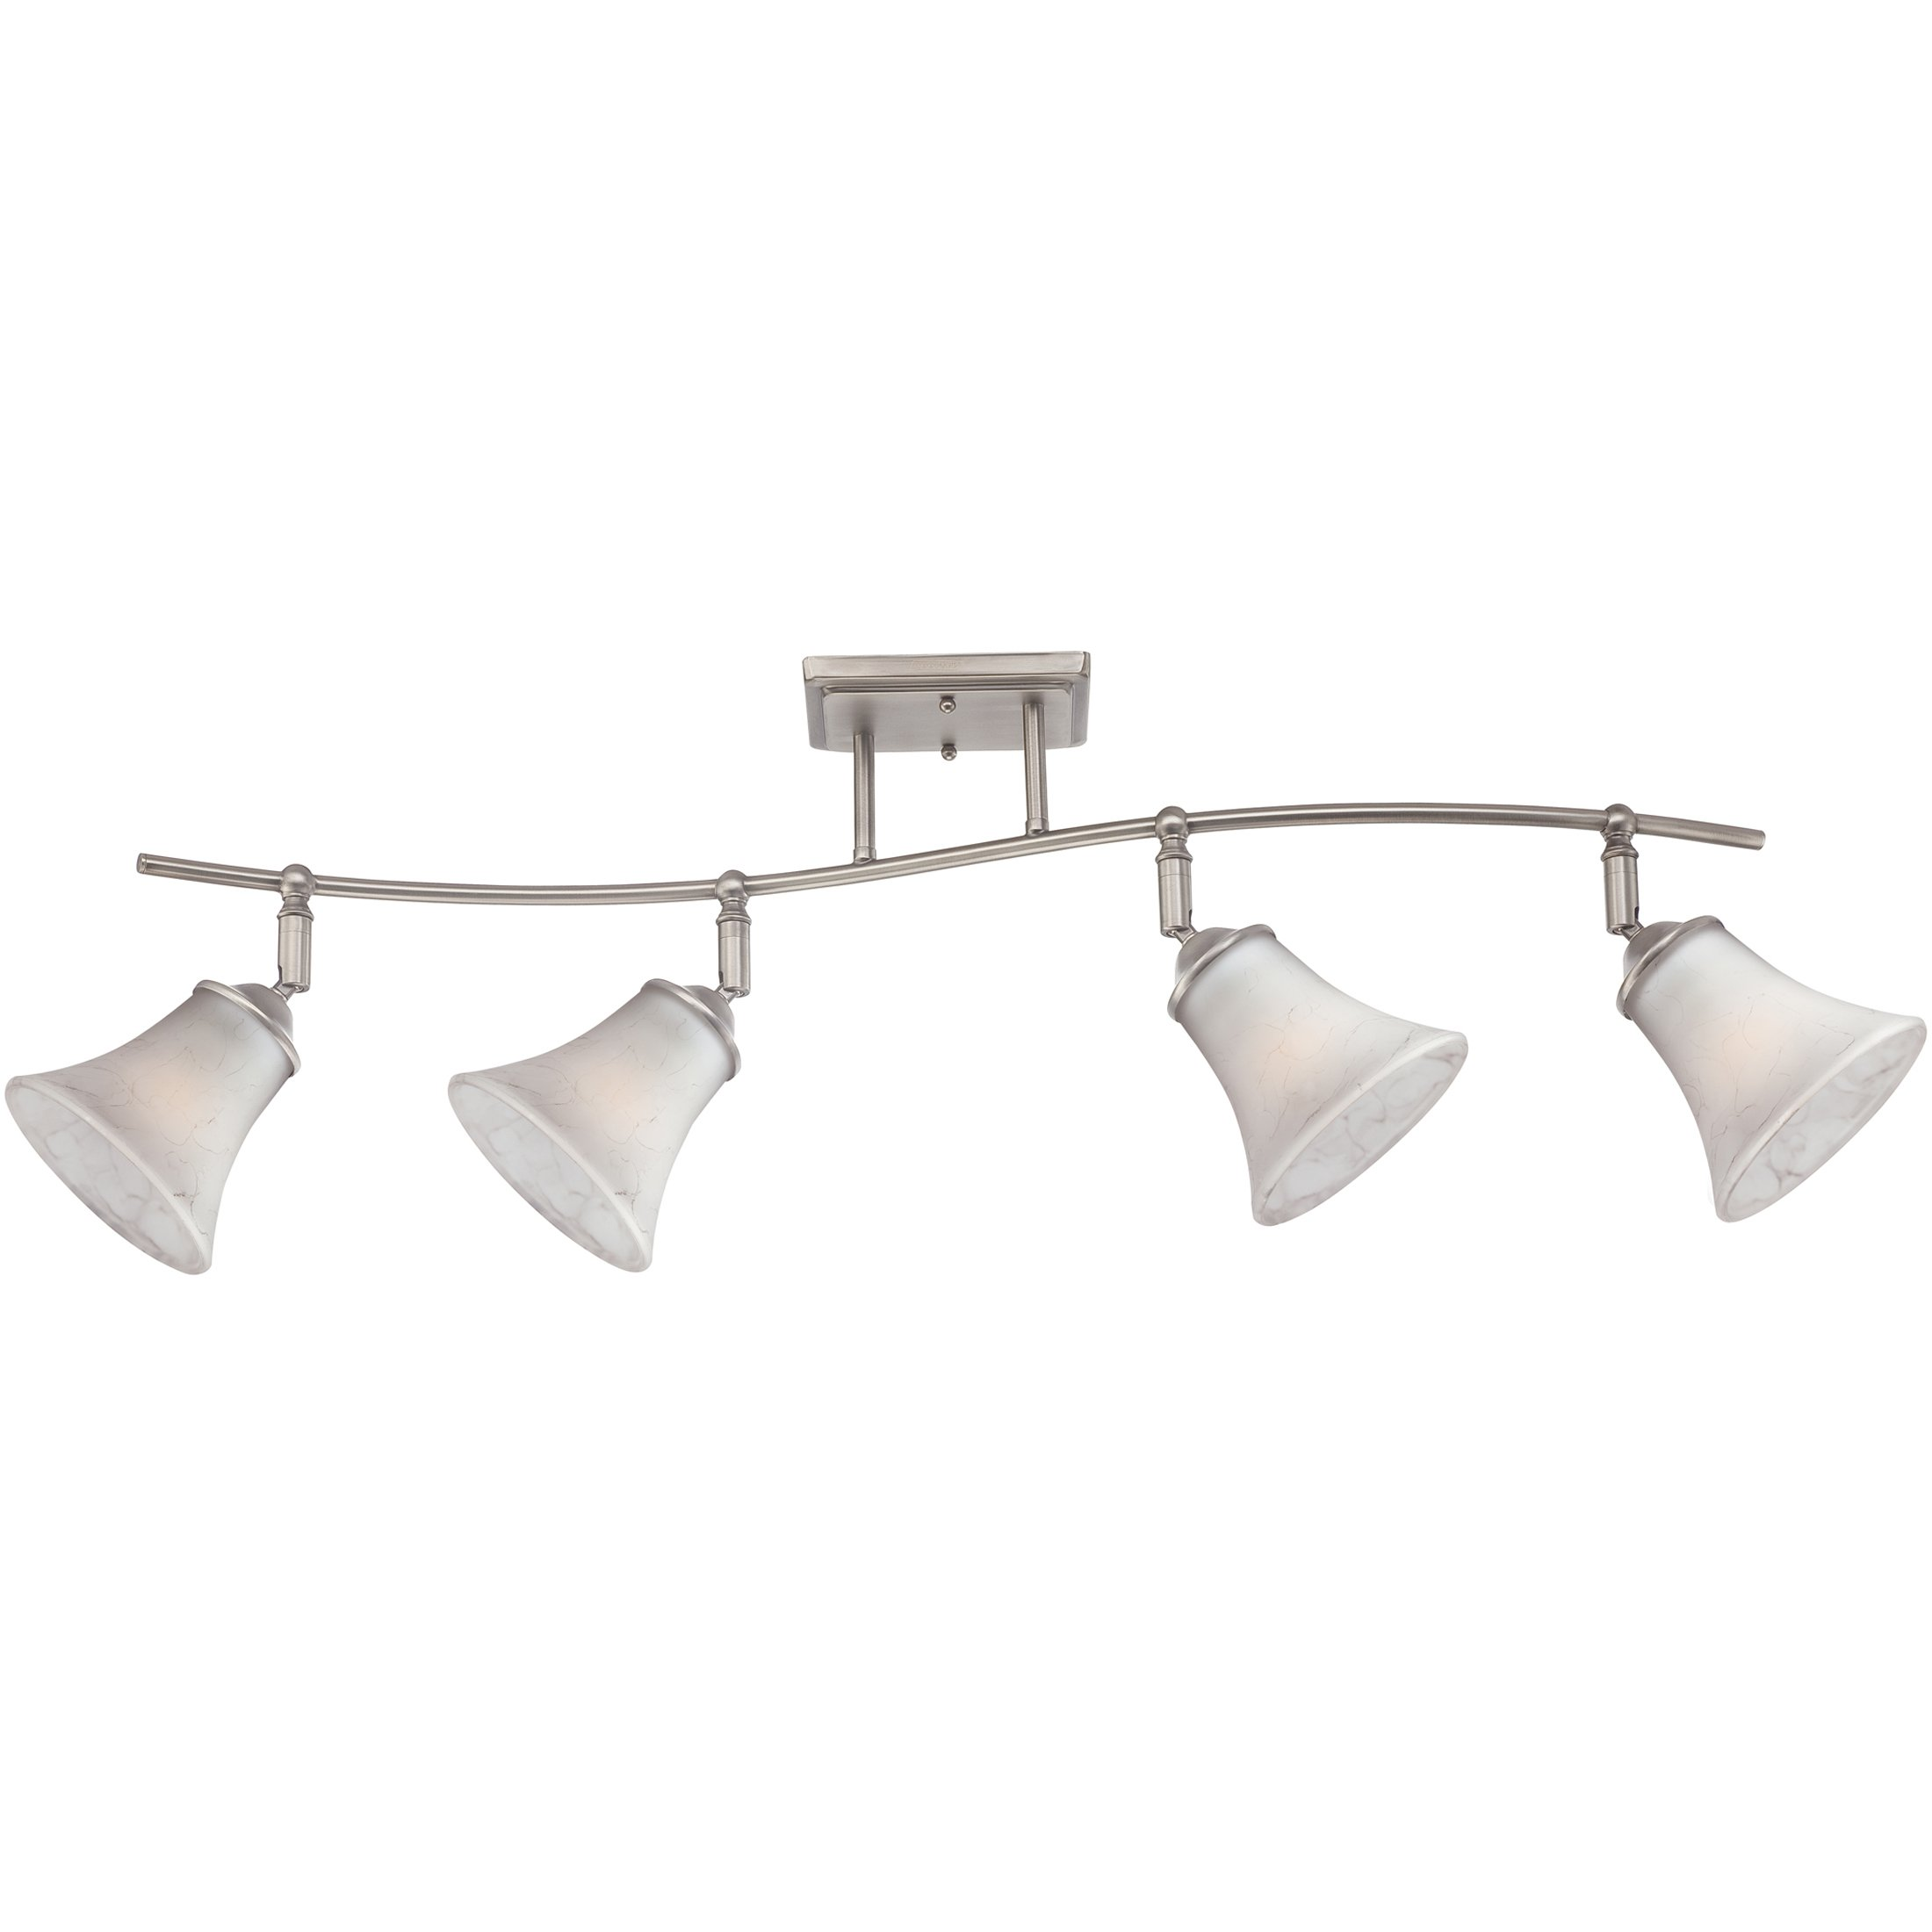 Quoizel DH1404AN Duchess Adjustable Track Kits Lighting, 4-Light, 400 Watts, Antique Nickel (13'' H x 37'' W)